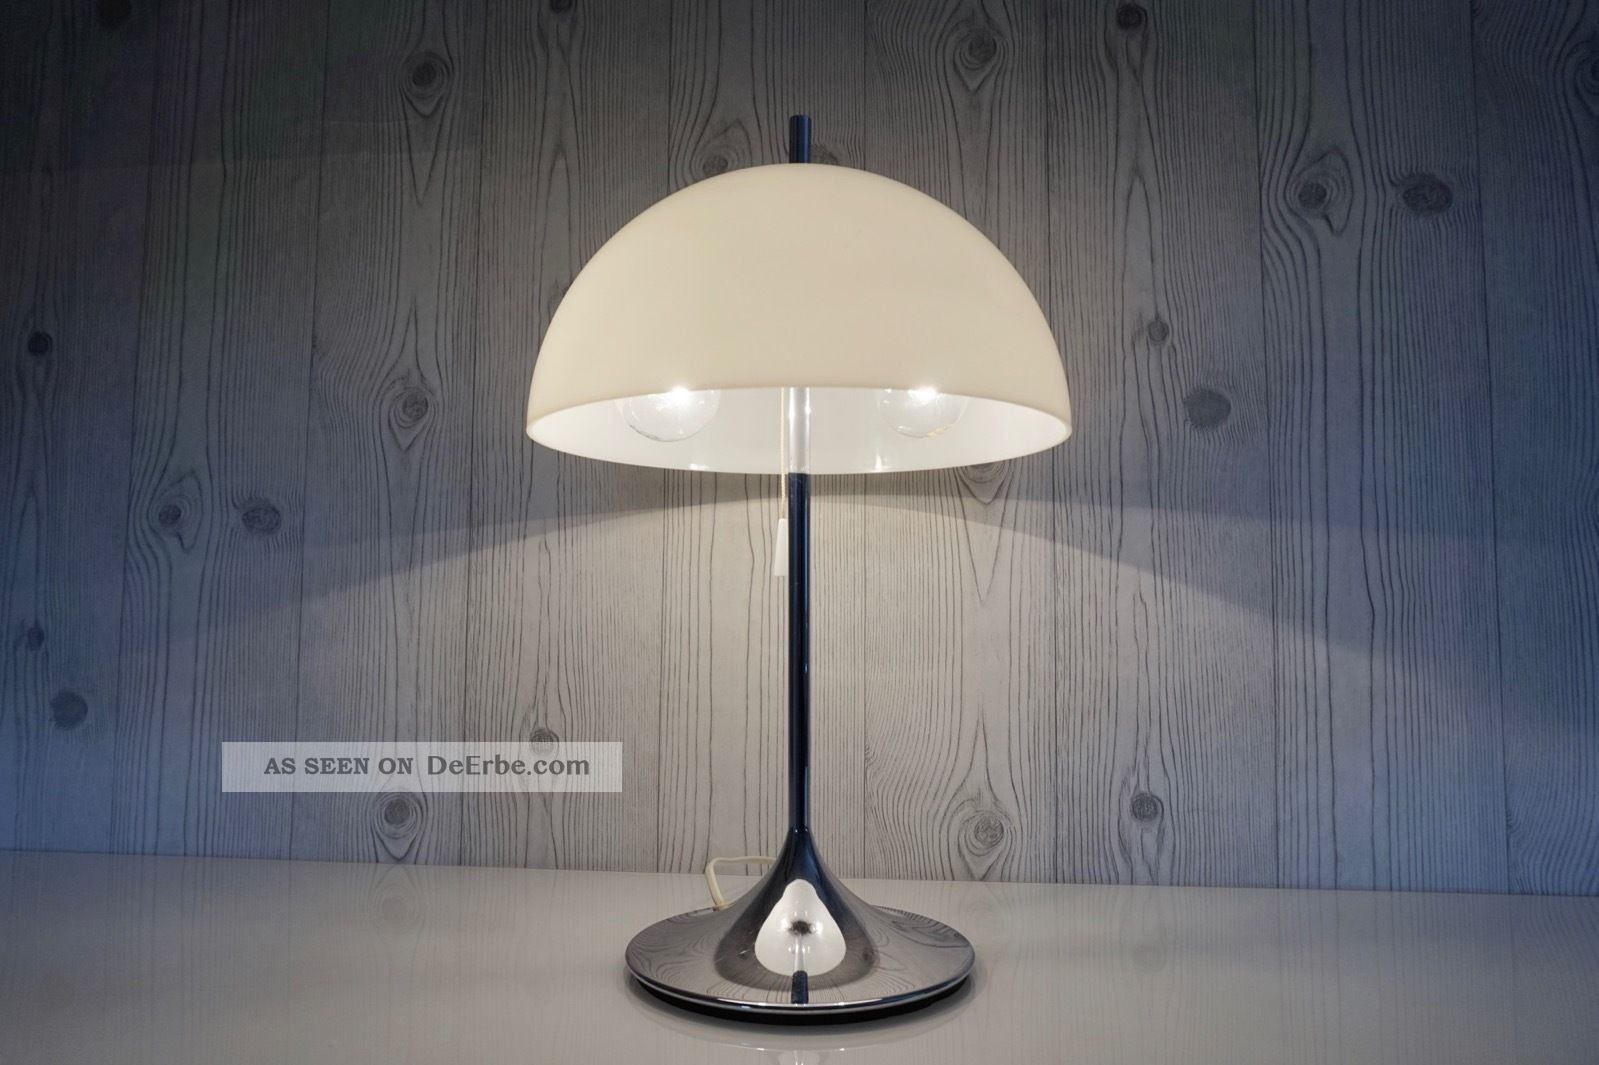 Wila tulip lampe chrom tulpenfuss design panthella for Lampen 70er stil